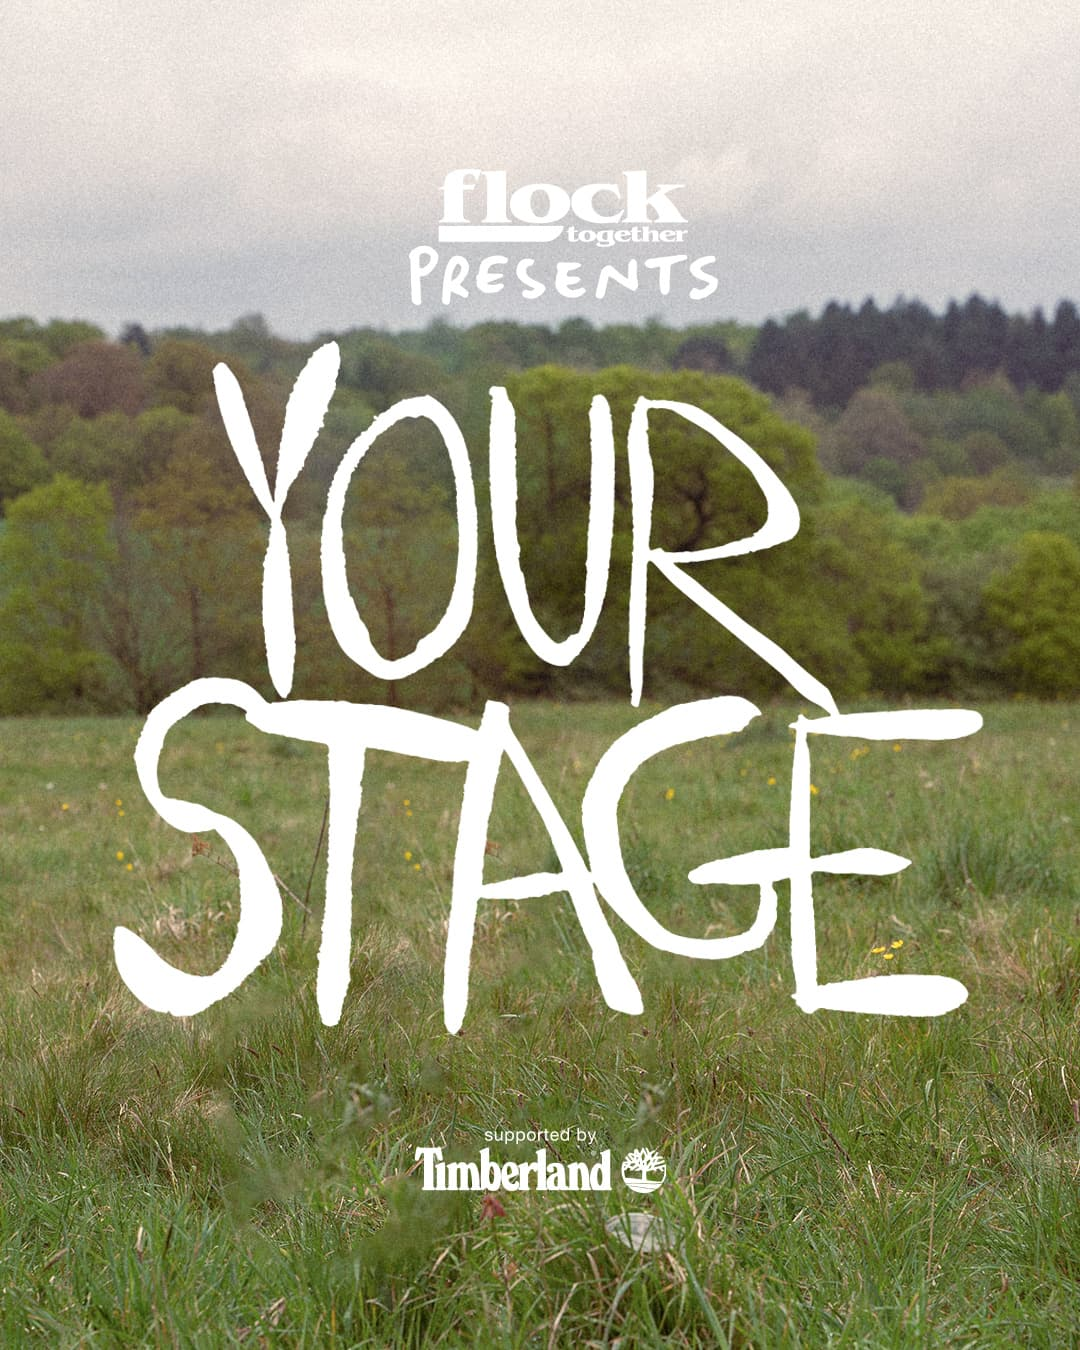 Flock Together presents 'Your Stage' supported by Timberland. Watch as four London artists explore their connection to the natural world.